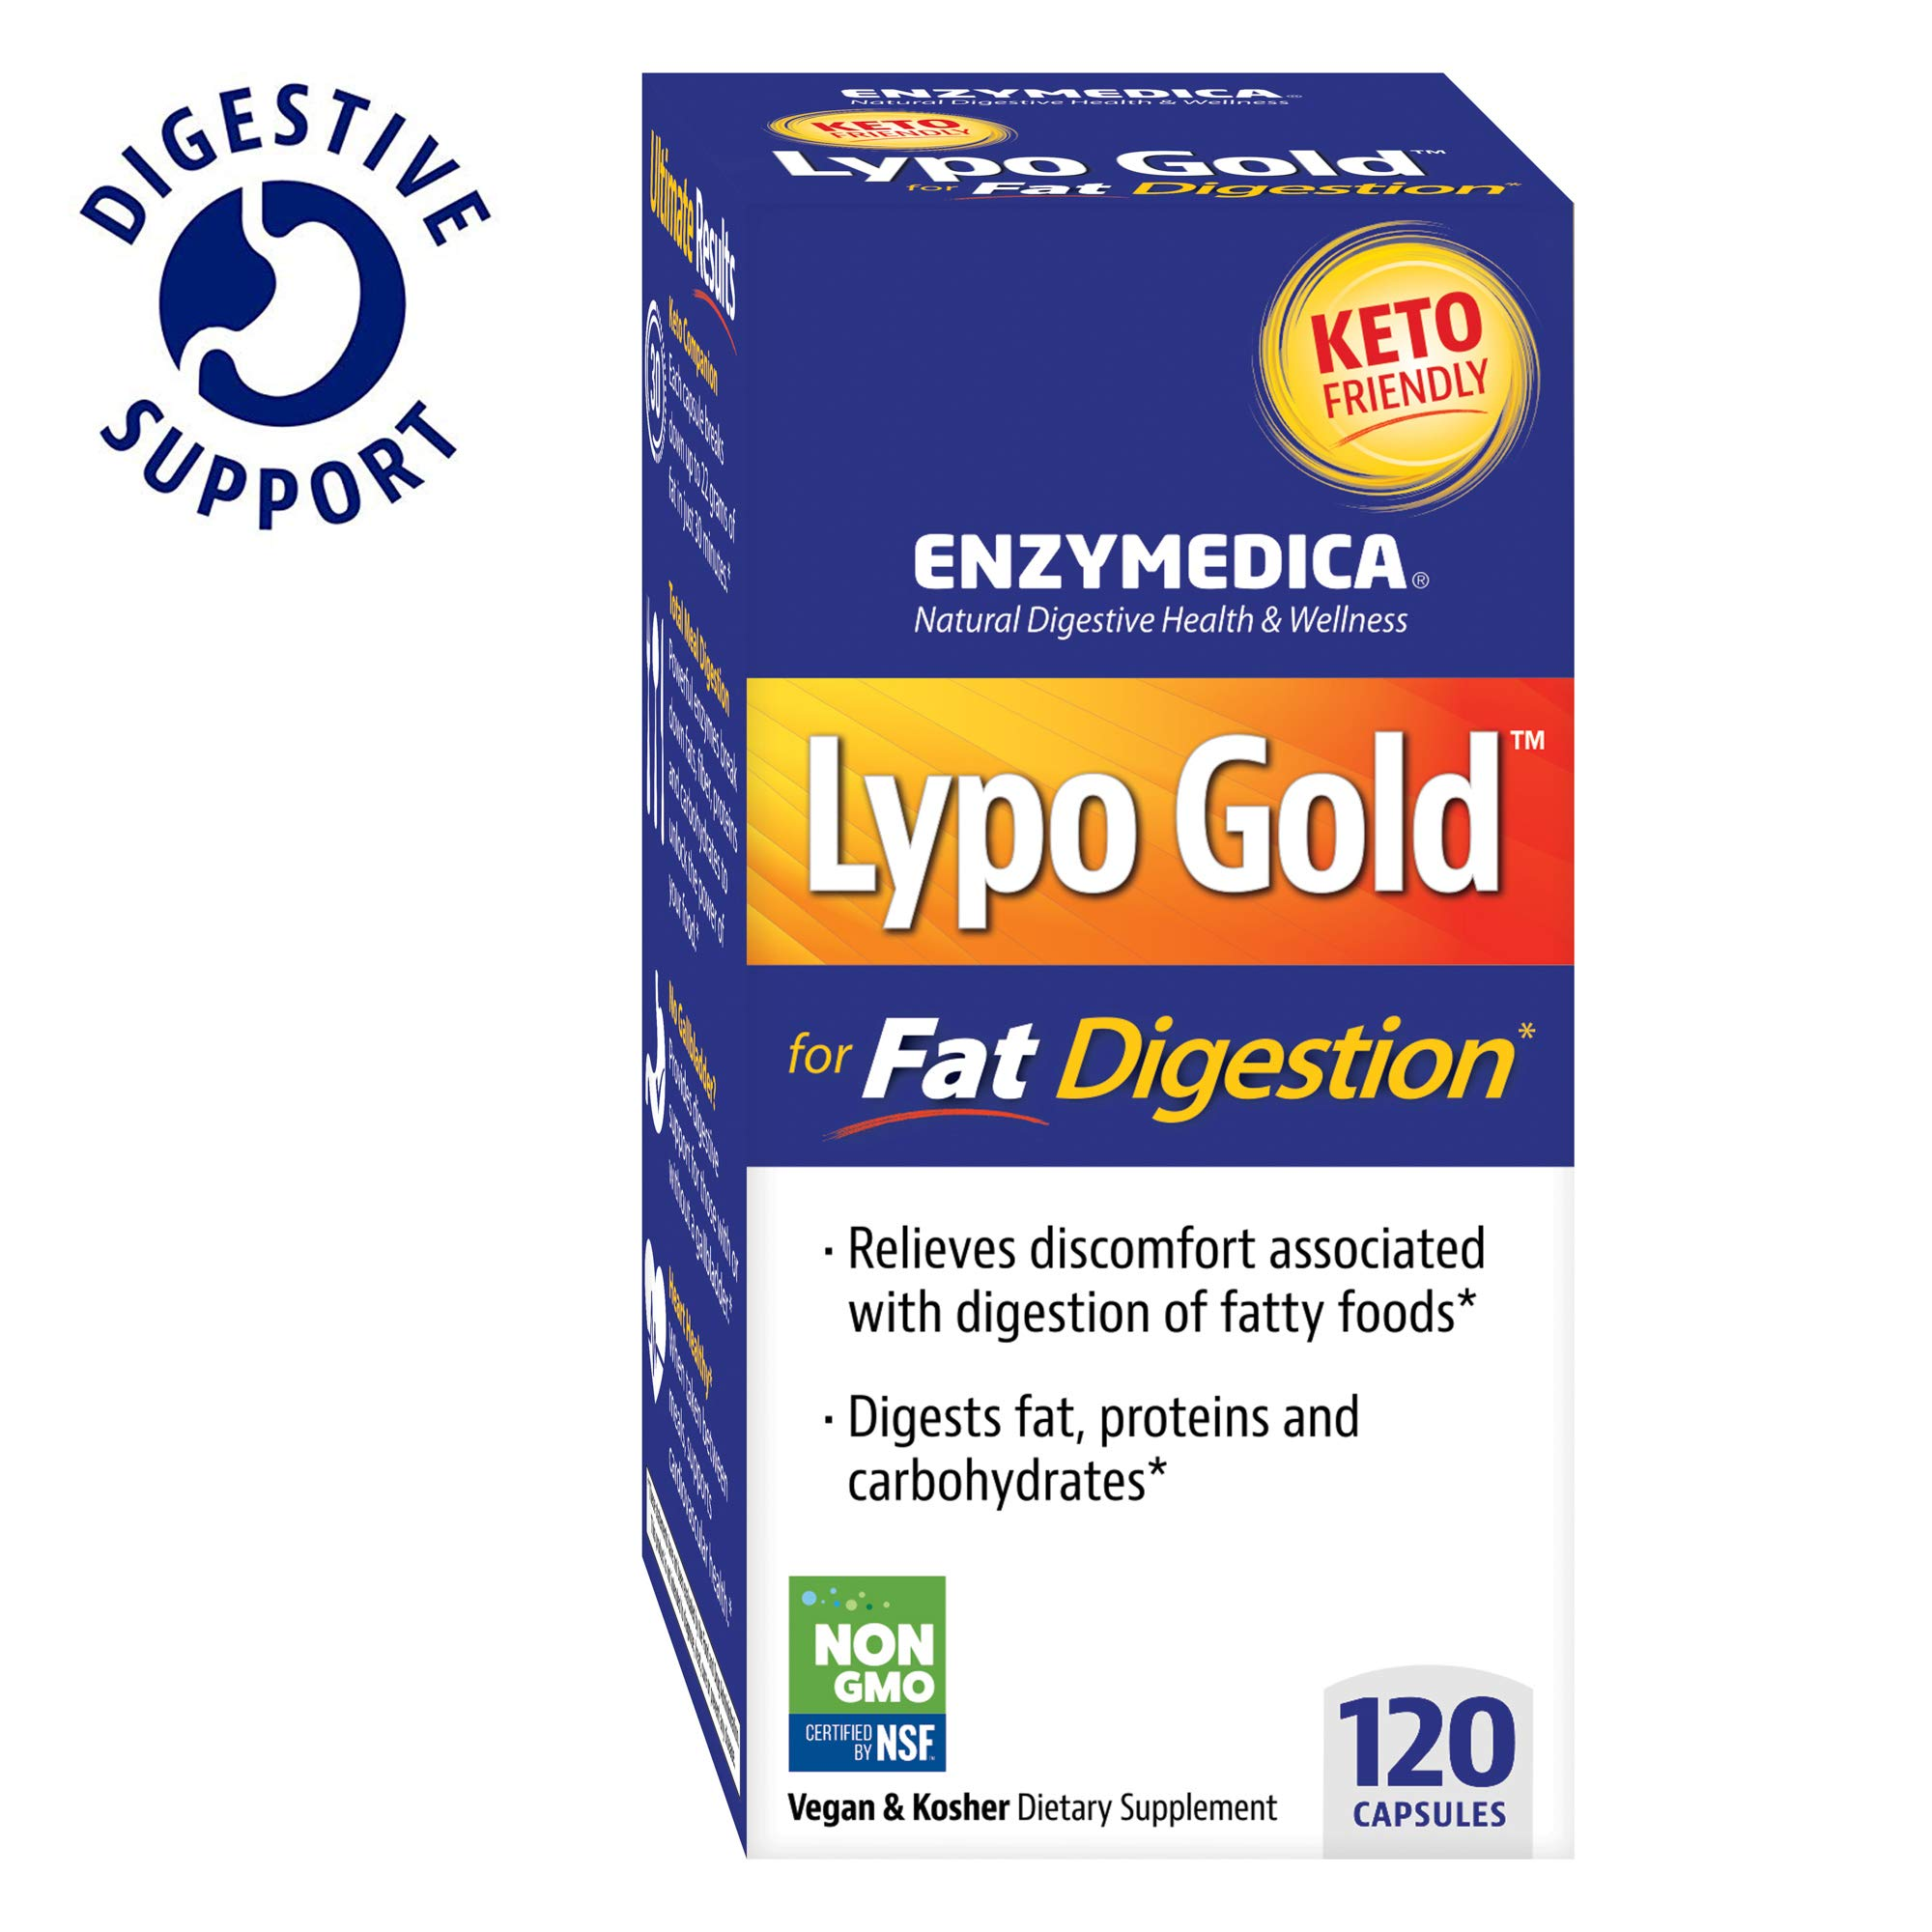 Enzymedica, Lypo Gold, Keto Supplement to Support Fat Digestion, Vegan, Gluten Free, Non-GMO, 120 Capsules (120 Servings) (FFP) by Enzymedica